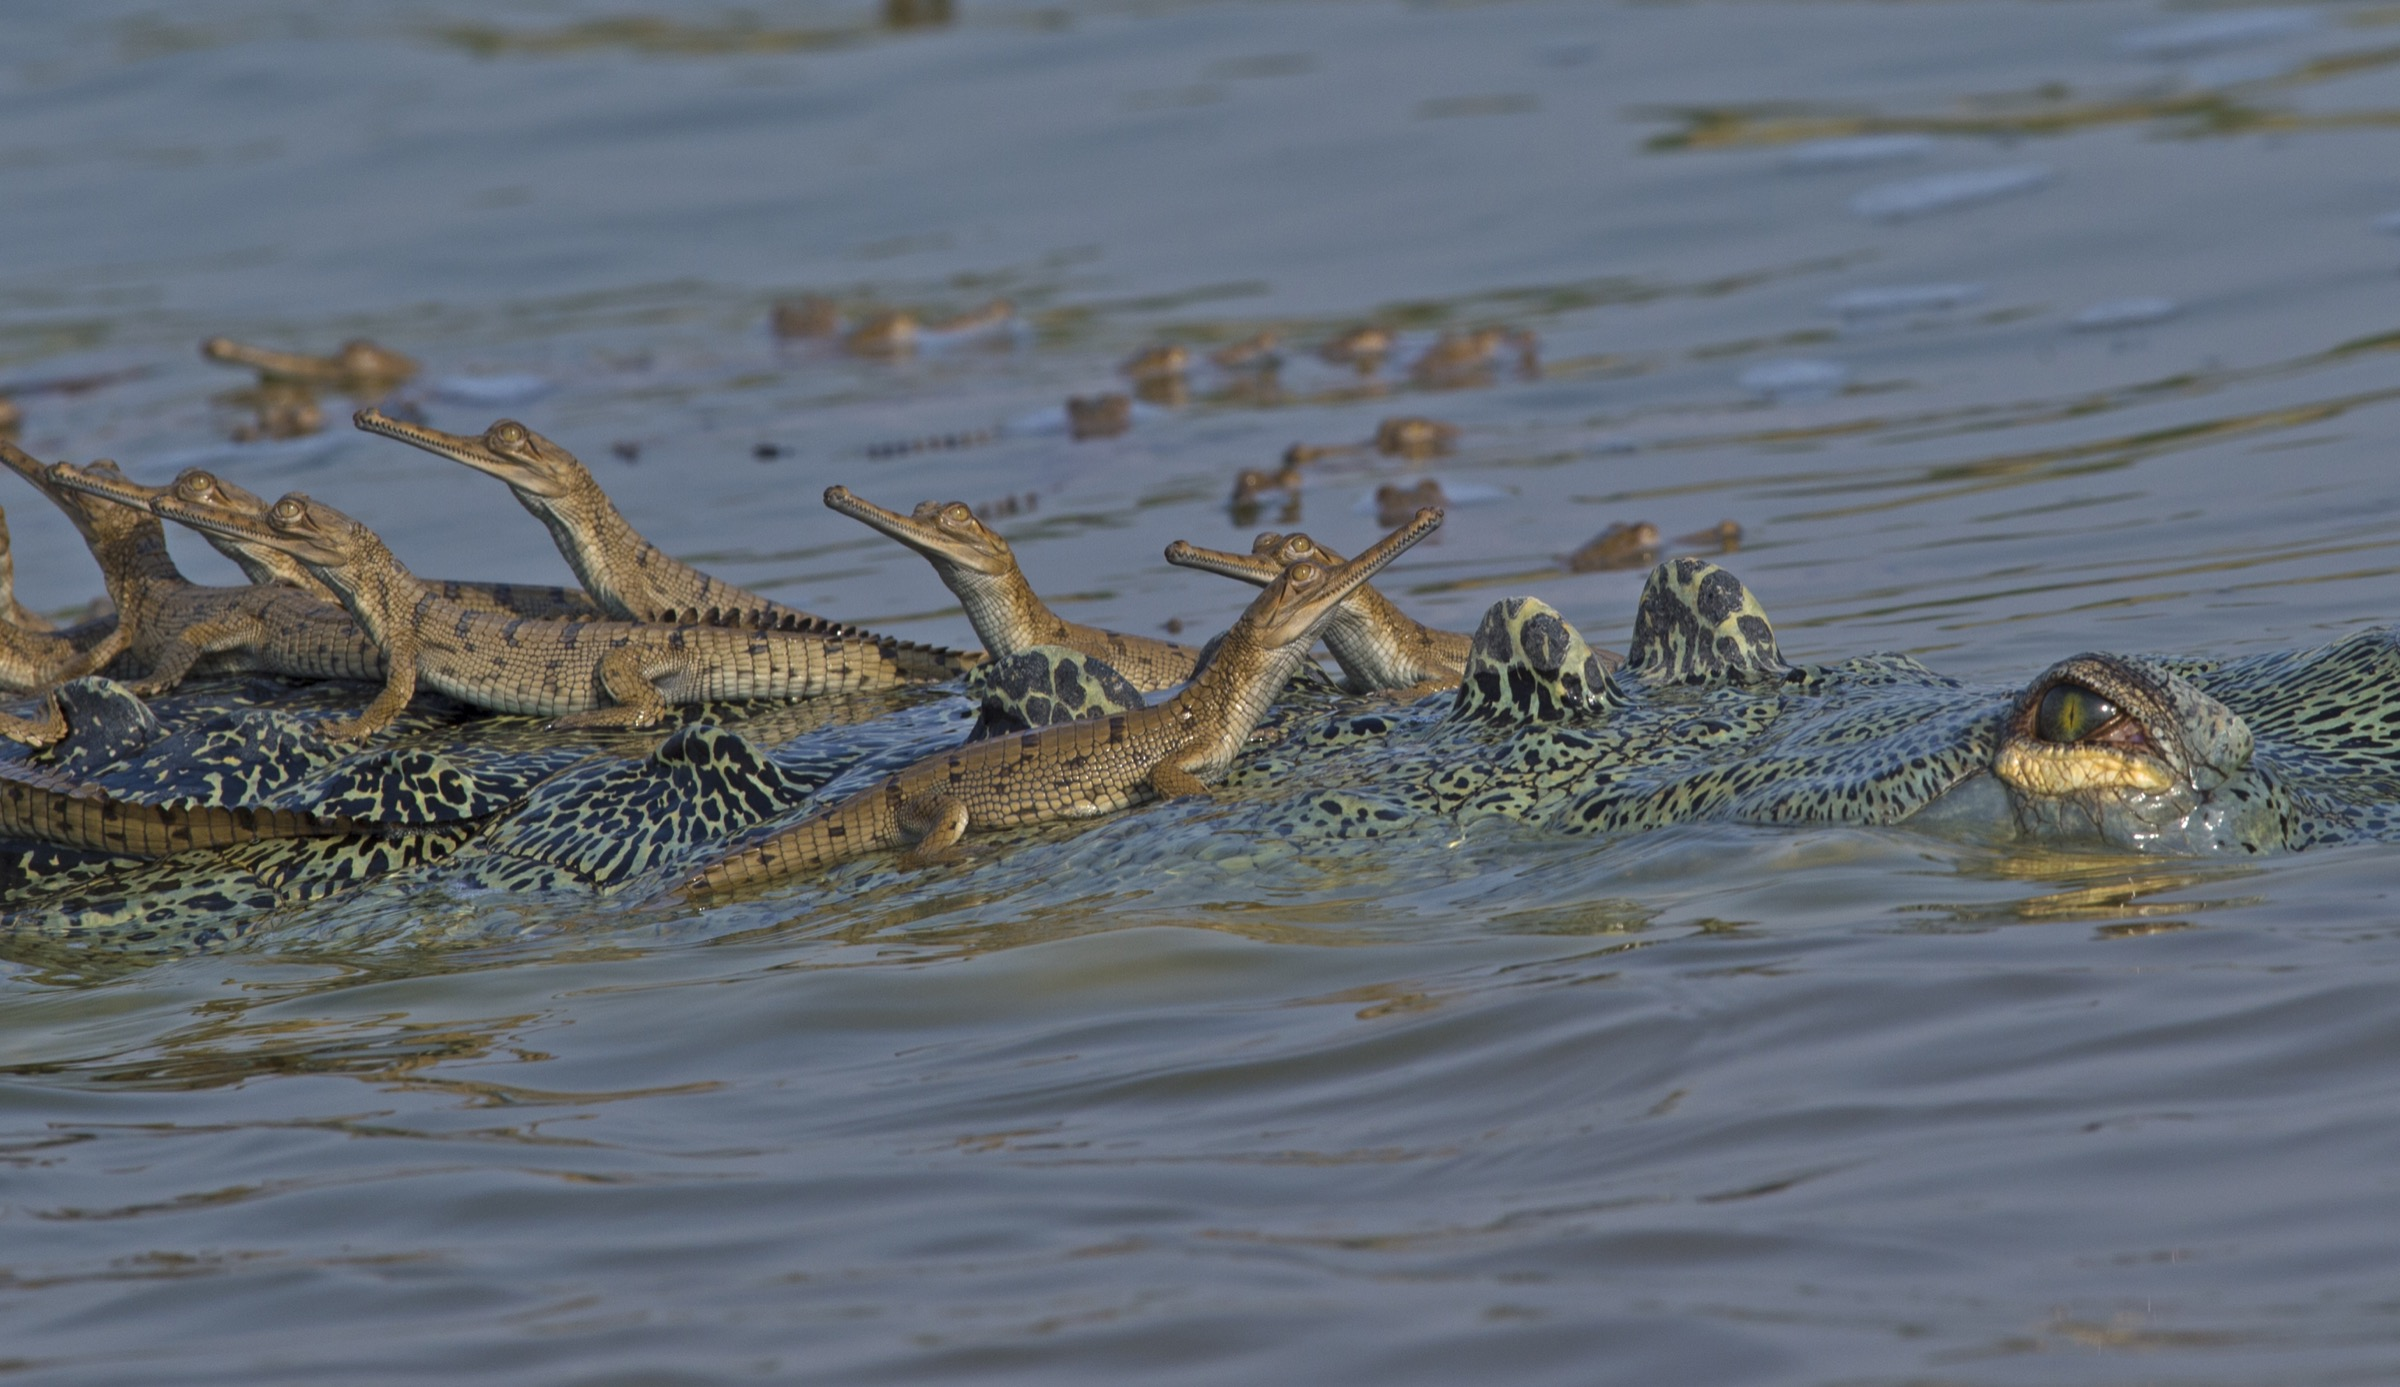 Hatchling gharials bask on the back of an adult male on the Chambal River, India.